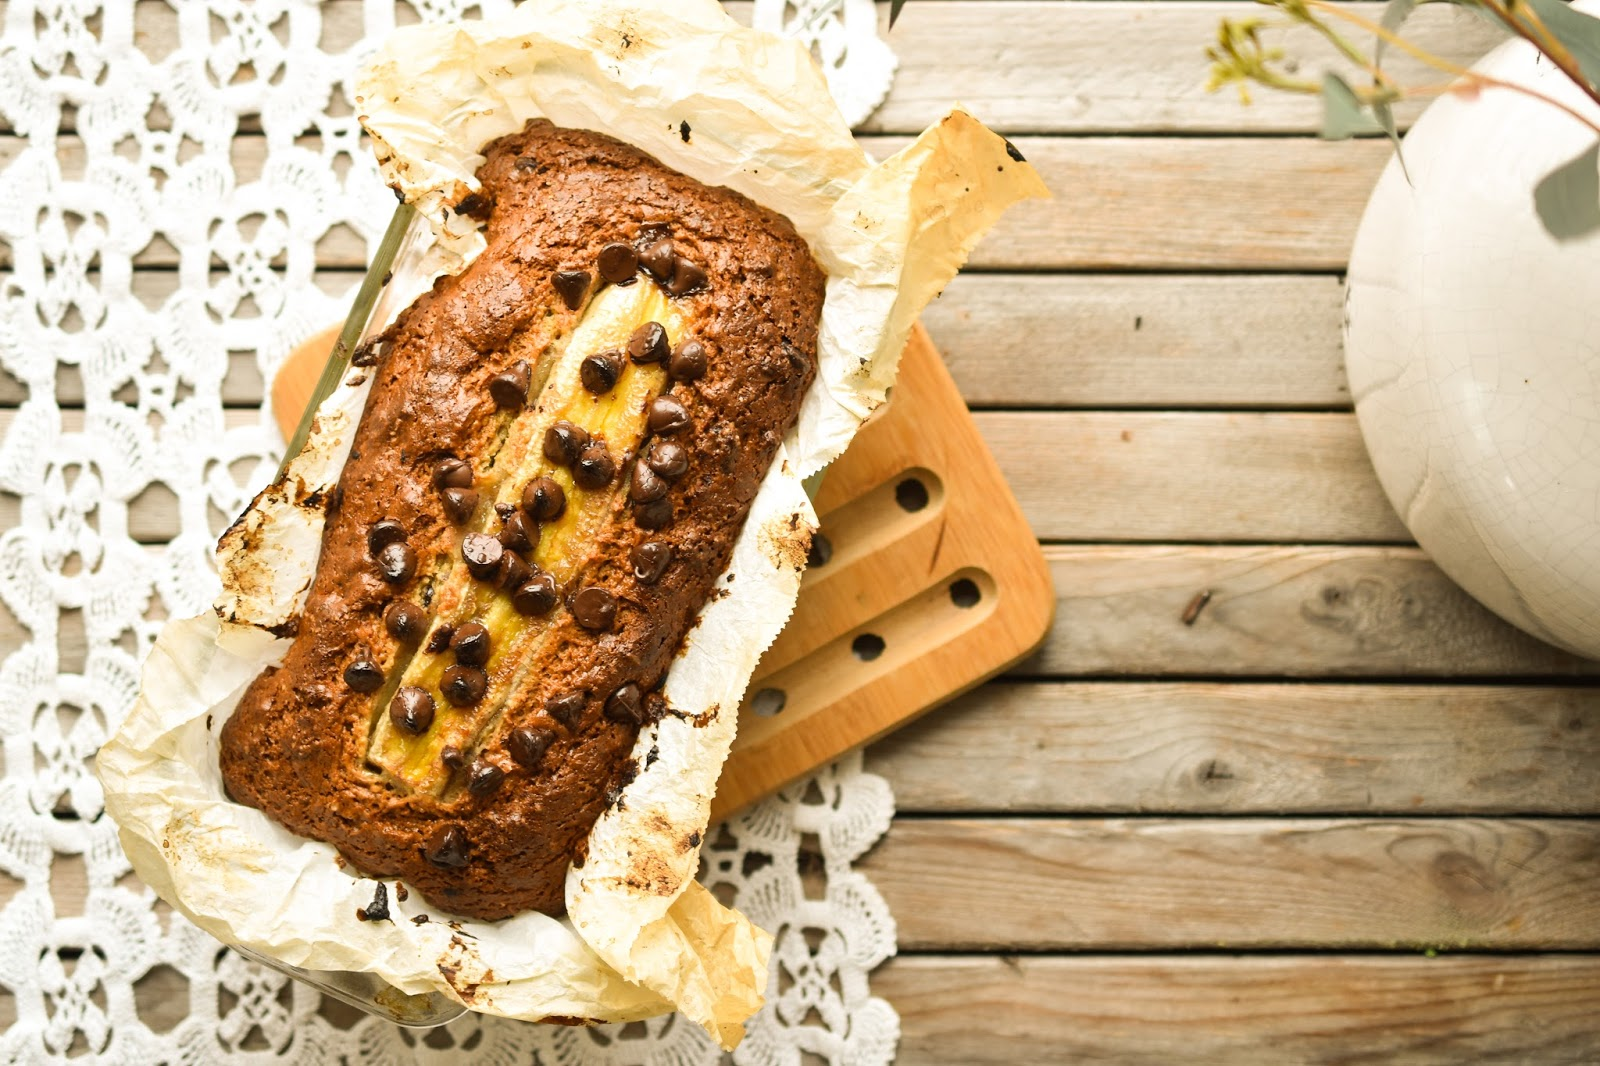 Woman in real lifethe art of the everyday the best banana bread even if you dont bake often or at all having a great banana bread recipe is a kitchen necessity a warm slice of banana bread can turn a bad day around forumfinder Image collections